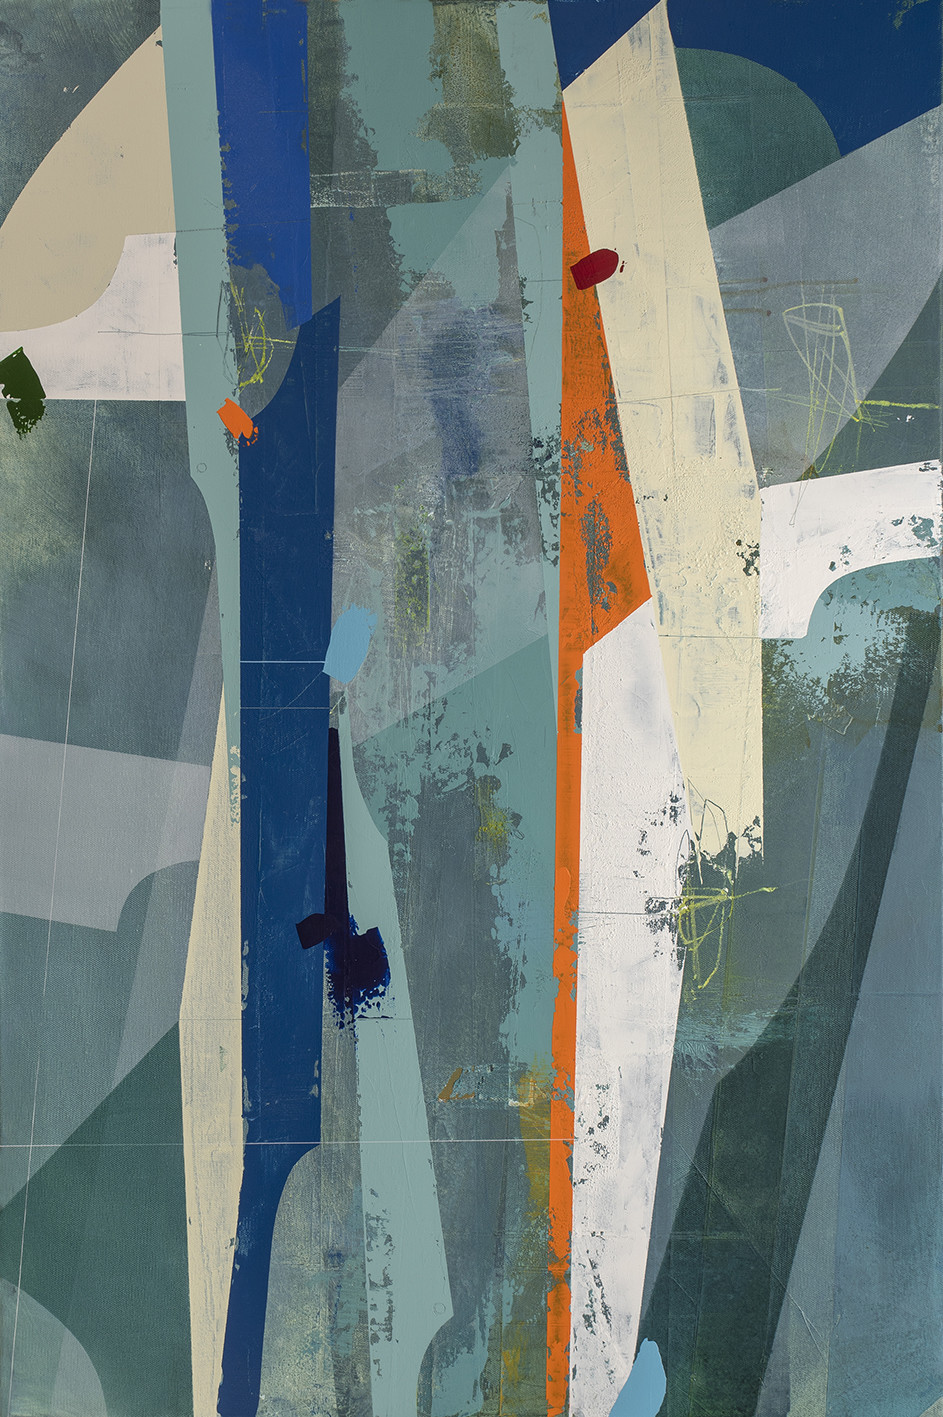 <span class=&#34;link fancybox-details-link&#34;><a href=&#34;/artists/77-andrew-bird/works/6205-andrew-bird-standing-forms-2019/&#34;>View Detail Page</a></span><div class=&#34;artist&#34;><strong>Andrew Bird</strong></div> <div class=&#34;title&#34;><em>Standing Forms</em>, 2019</div> <div class=&#34;signed_and_dated&#34;>signed, titled and dated on reverse</div> <div class=&#34;medium&#34;>acrylic on canvas</div> <div class=&#34;dimensions&#34;>h 91 x w 61 cm<br /> 35 7/8 x 24 1/8 in</div><div class=&#34;price&#34;>£2,750.00</div><div class=&#34;copyright_line&#34;>Own Art: £ 250 x 10 Months, 0% APR + £250</div>